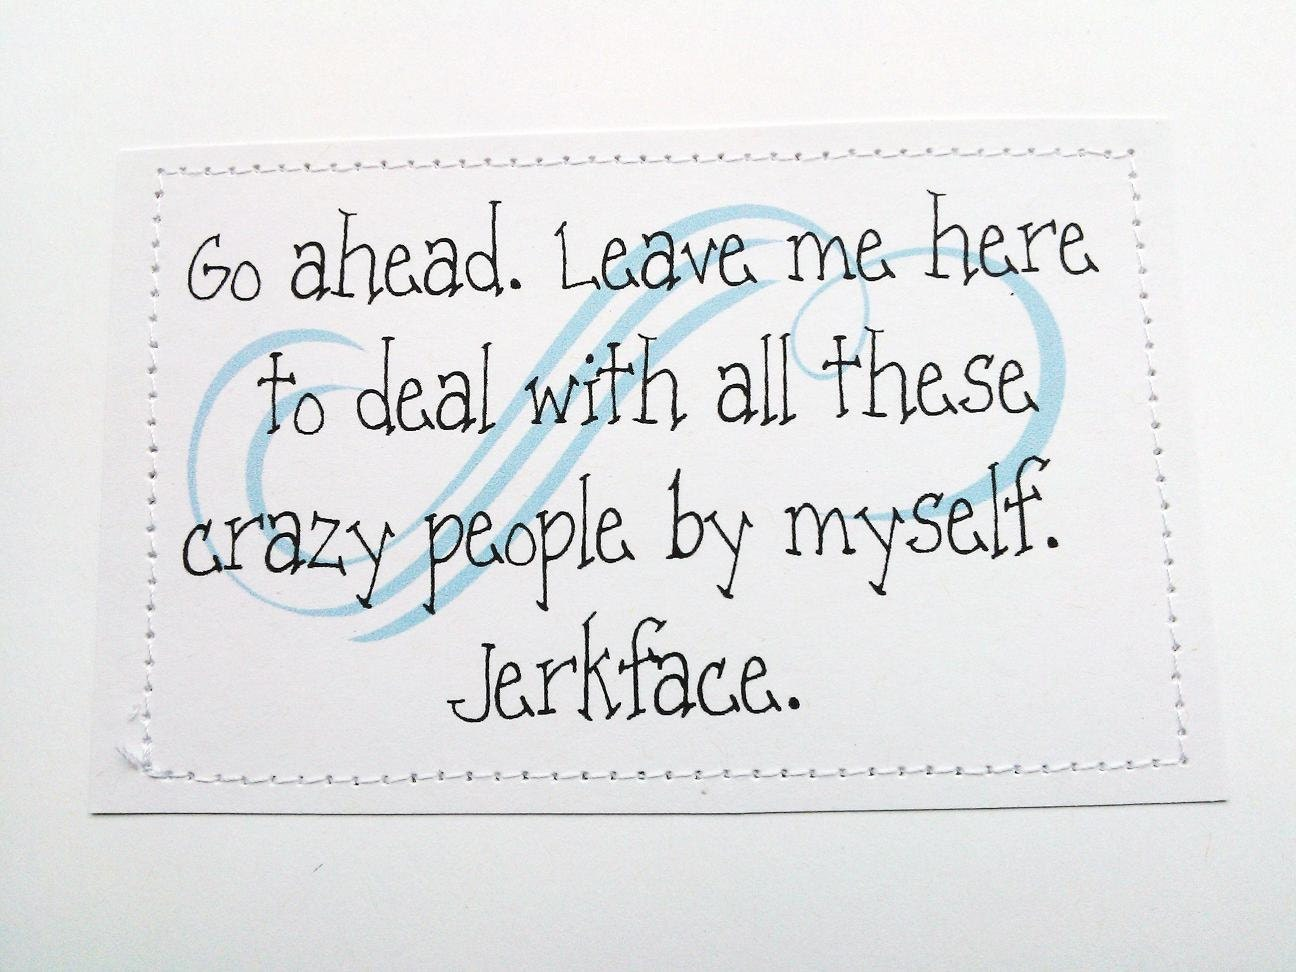 Goodbye farewell quotes - Gallery For Gt Farewell Funny Quotes To Coworkers